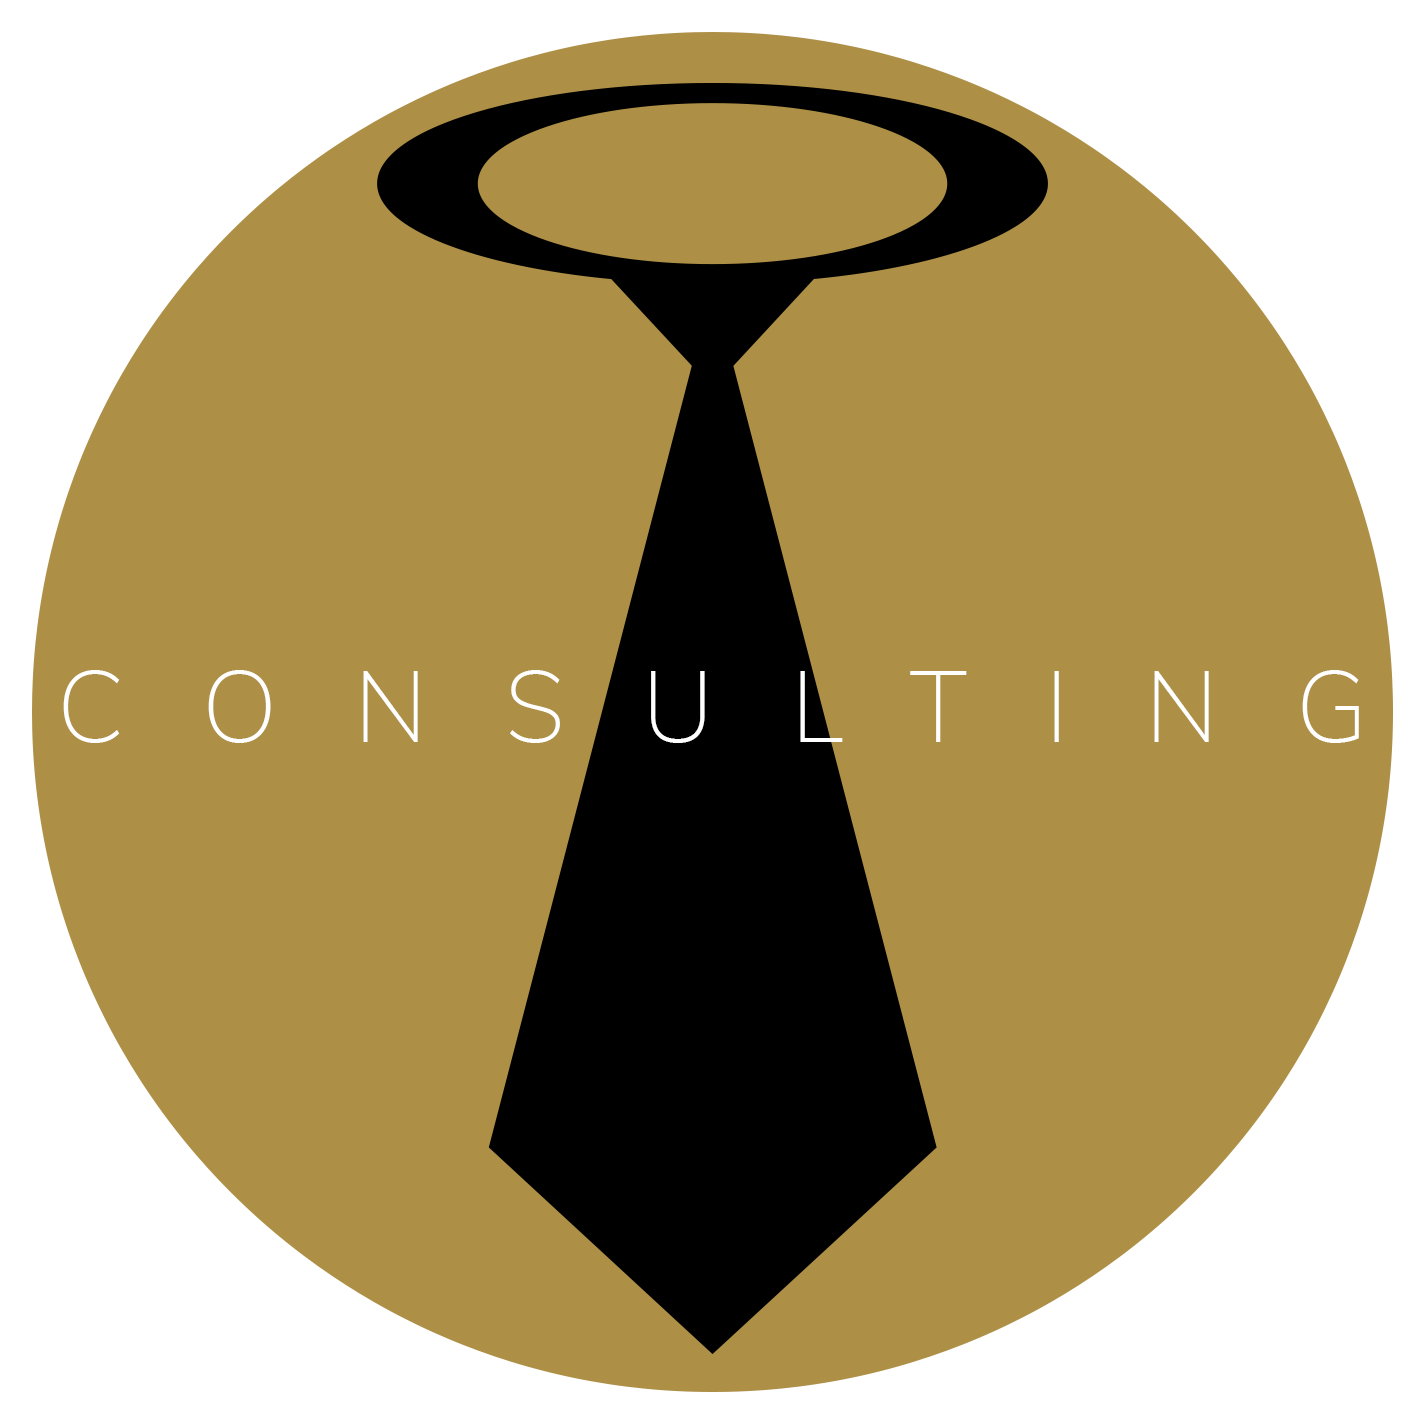 CONSULTING - résumés, cover letters, personal statements + more.